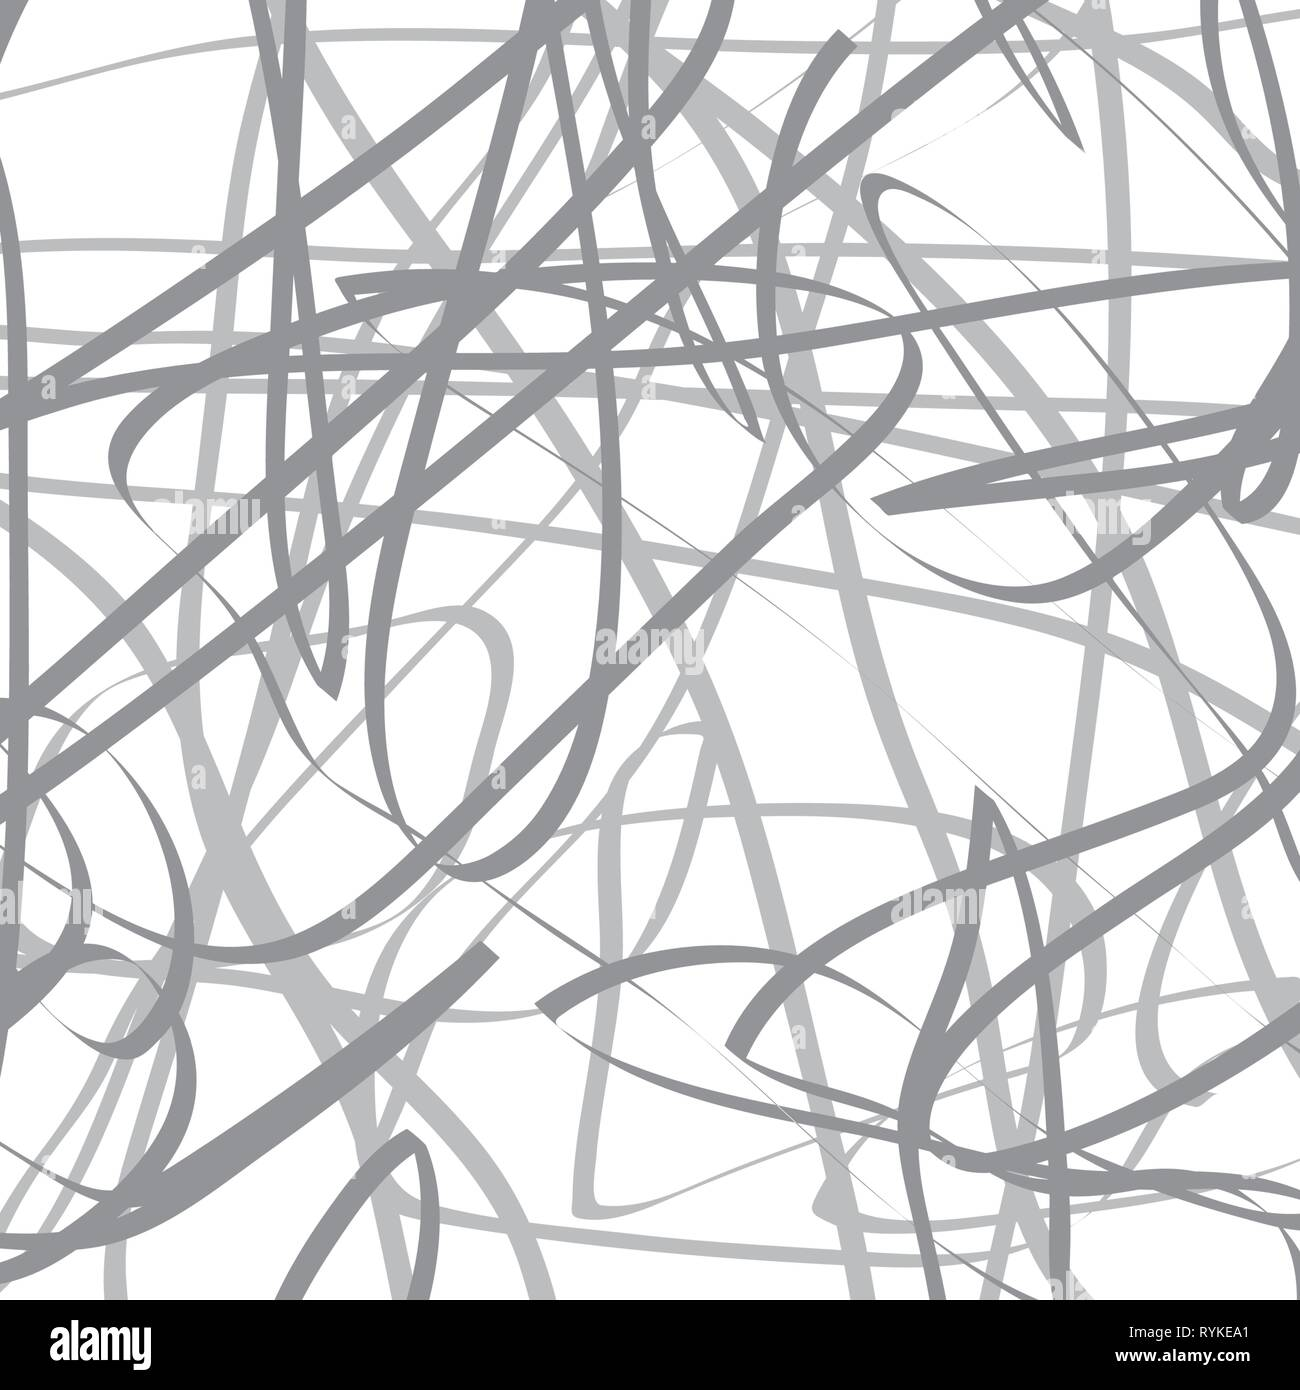 Vector logo, scribble of a wool clew. Confusion of lines inside a square frame - Stock Vector